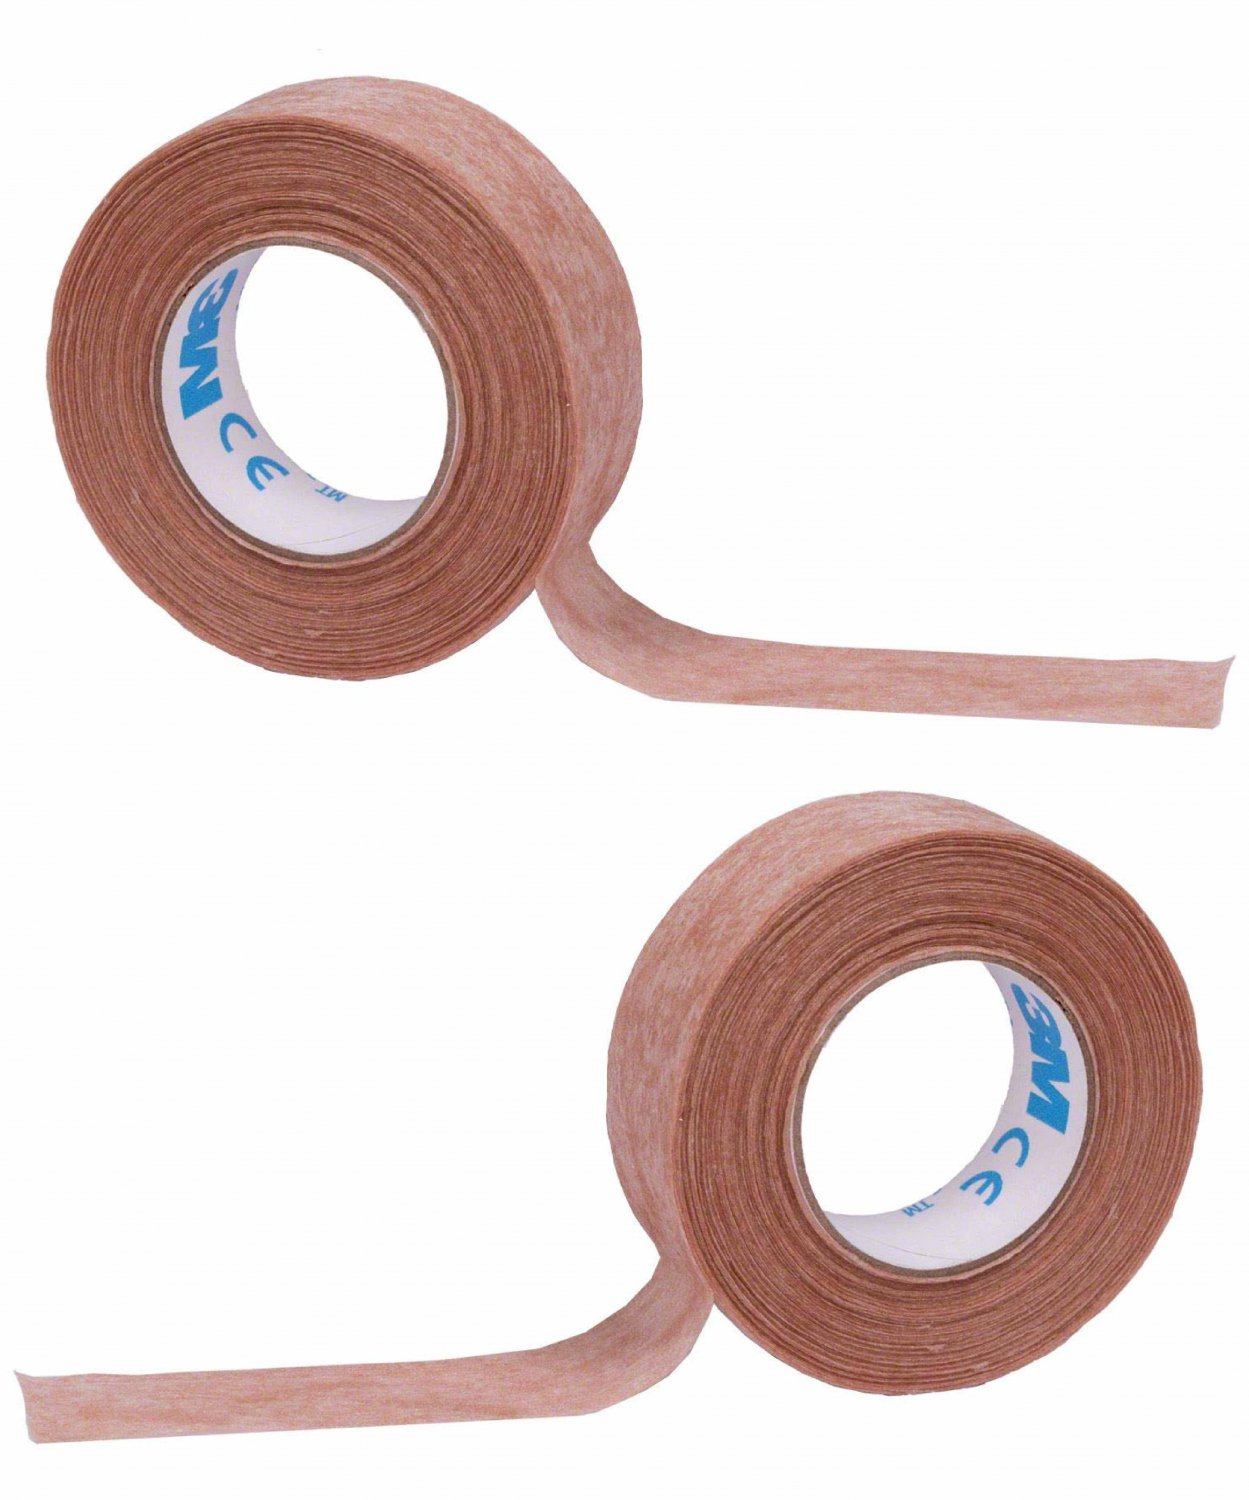 """3M Micropore Paper Surgical Tape Brown Tan 1/2"""" 0.5 inch wide, 10 Yards Length"""